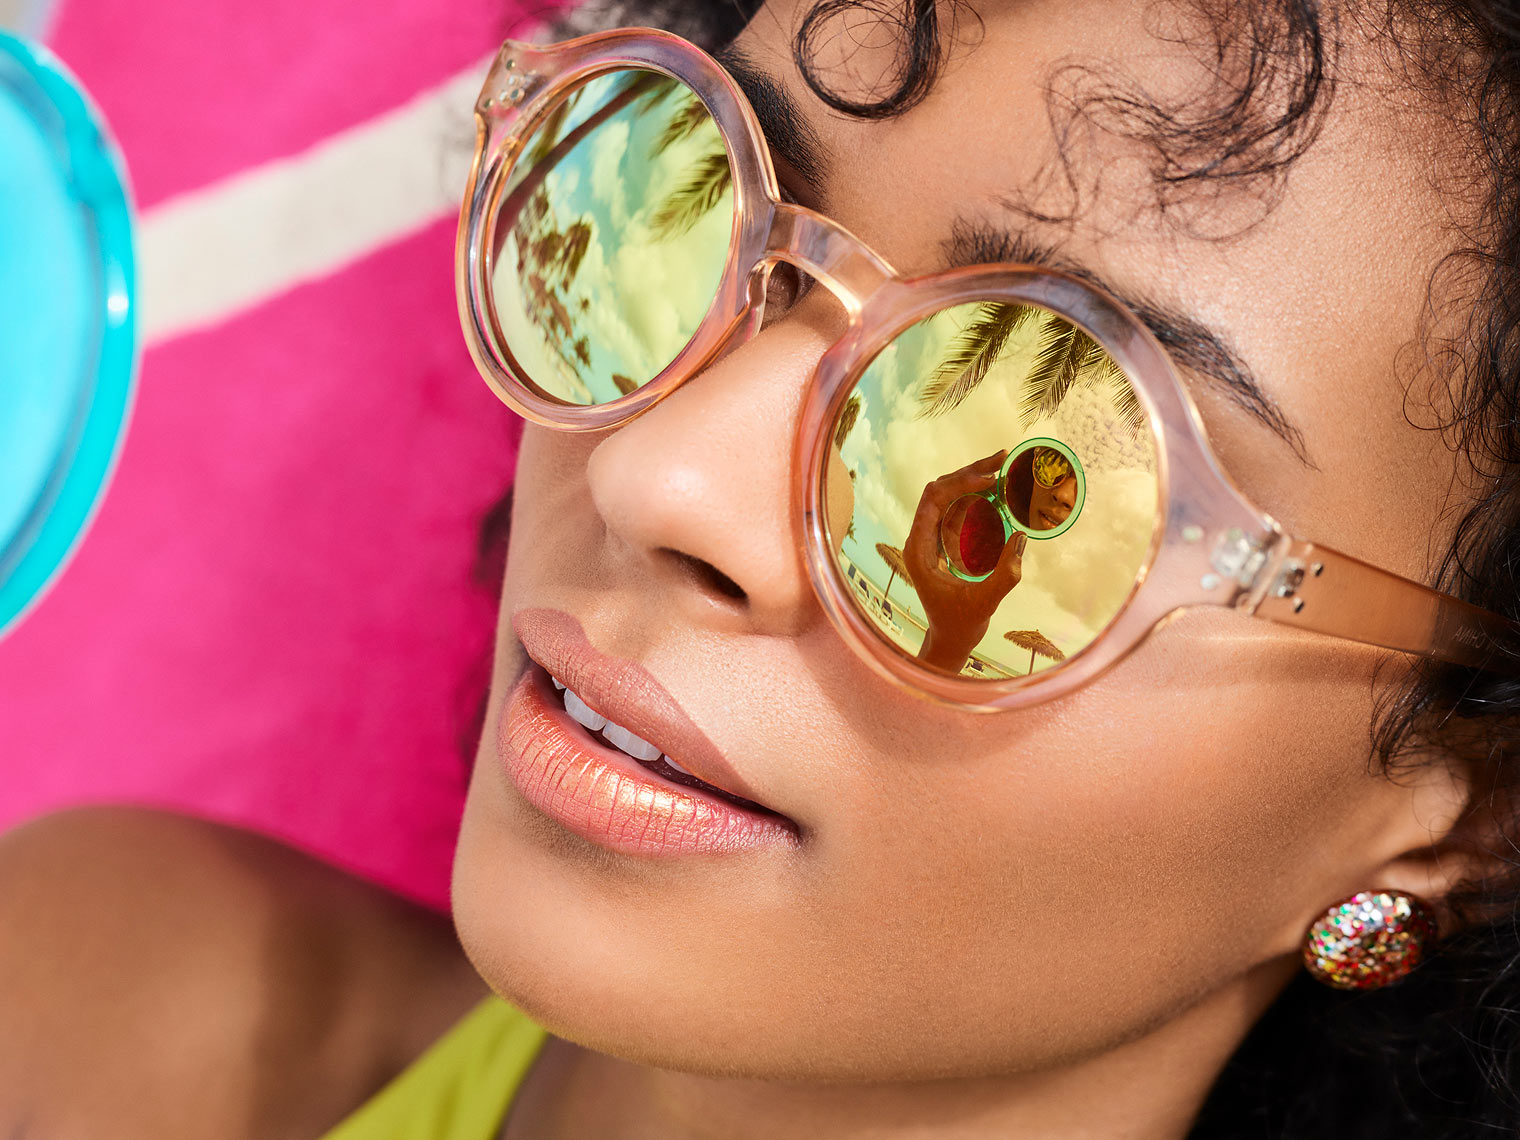 RH_Lifestyle_2019_resort_Mirror-Sunglasses_S01_00360